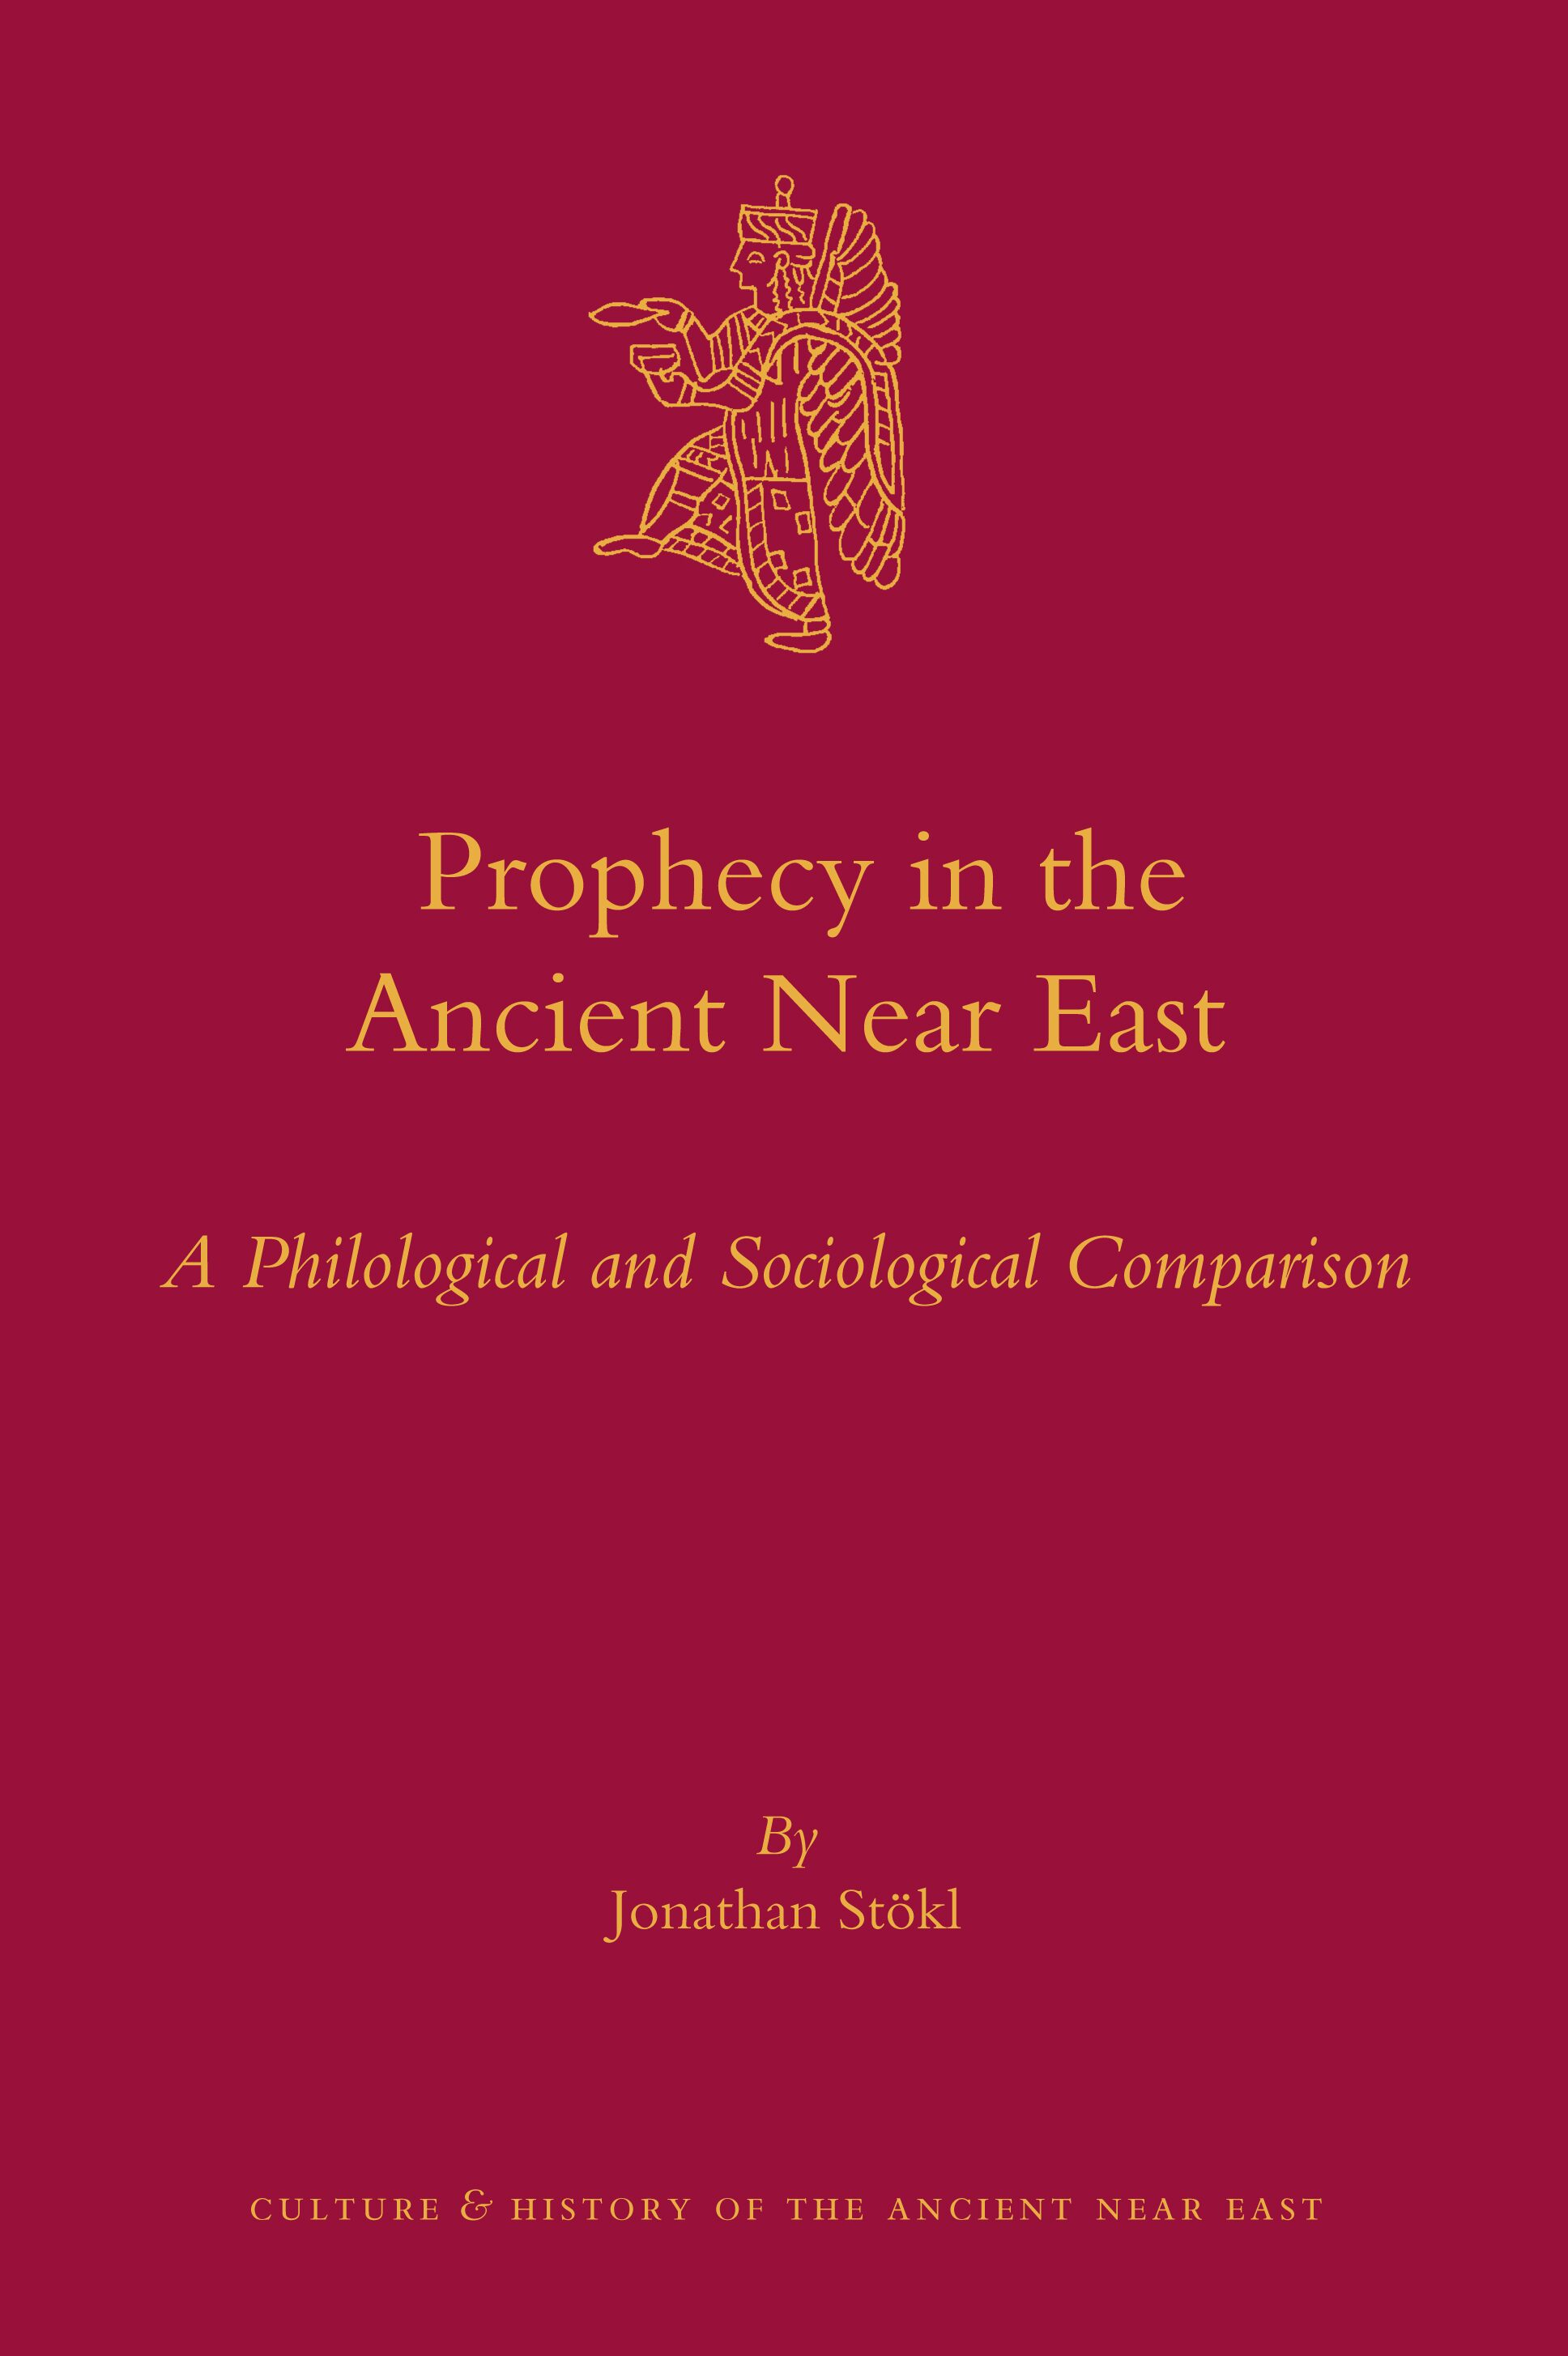 Prophecy in the Ancient Near East: A Philological and Sociological Comparison